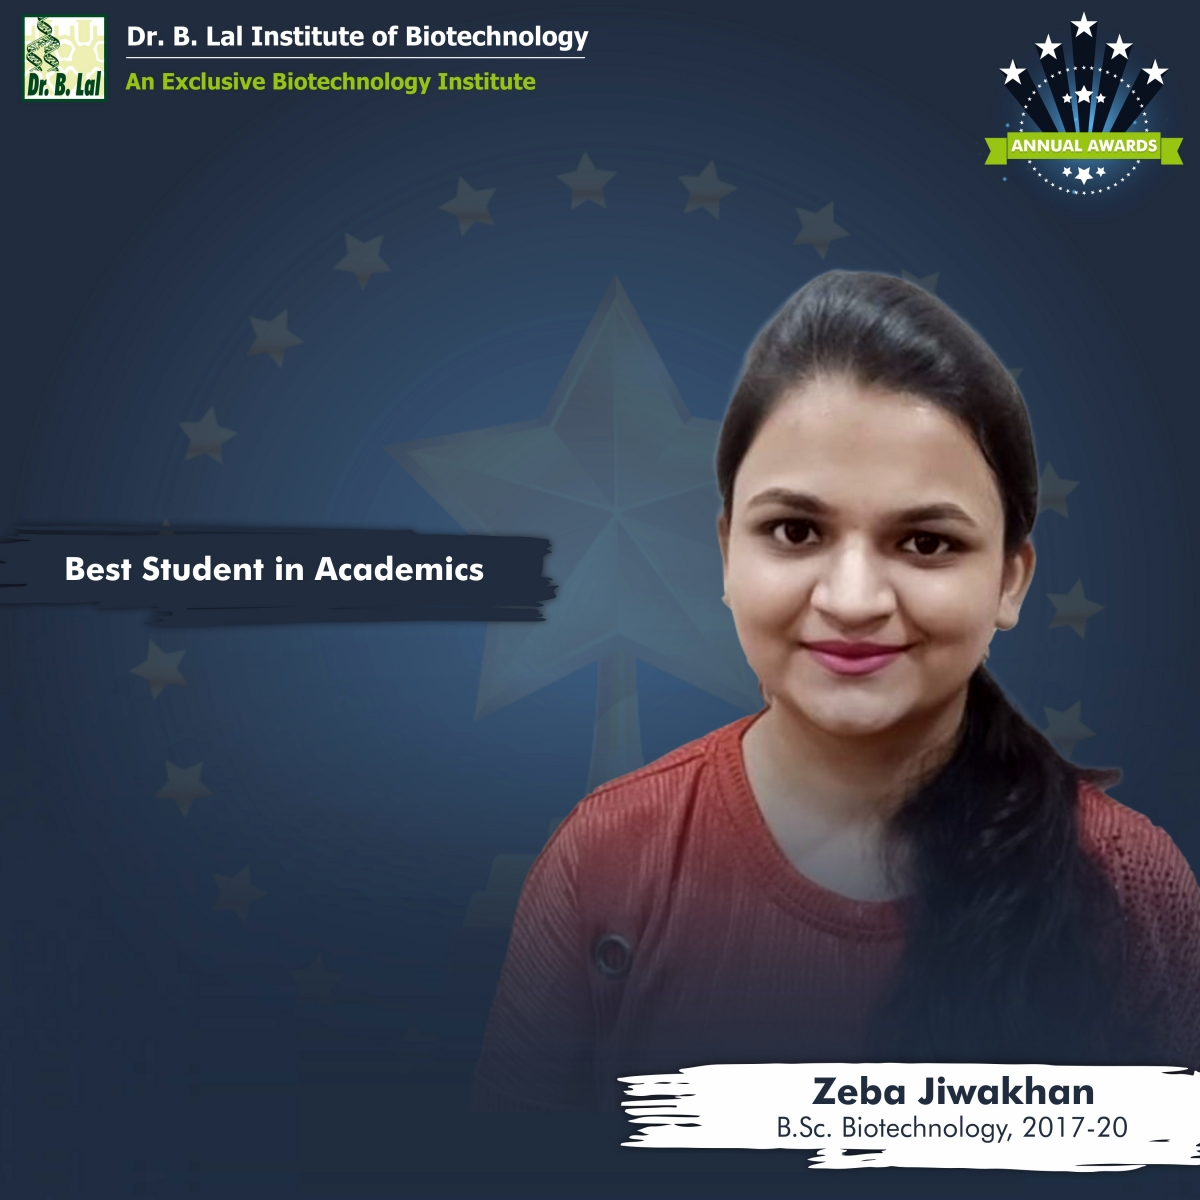 Best Student in Academics | Annual Awards